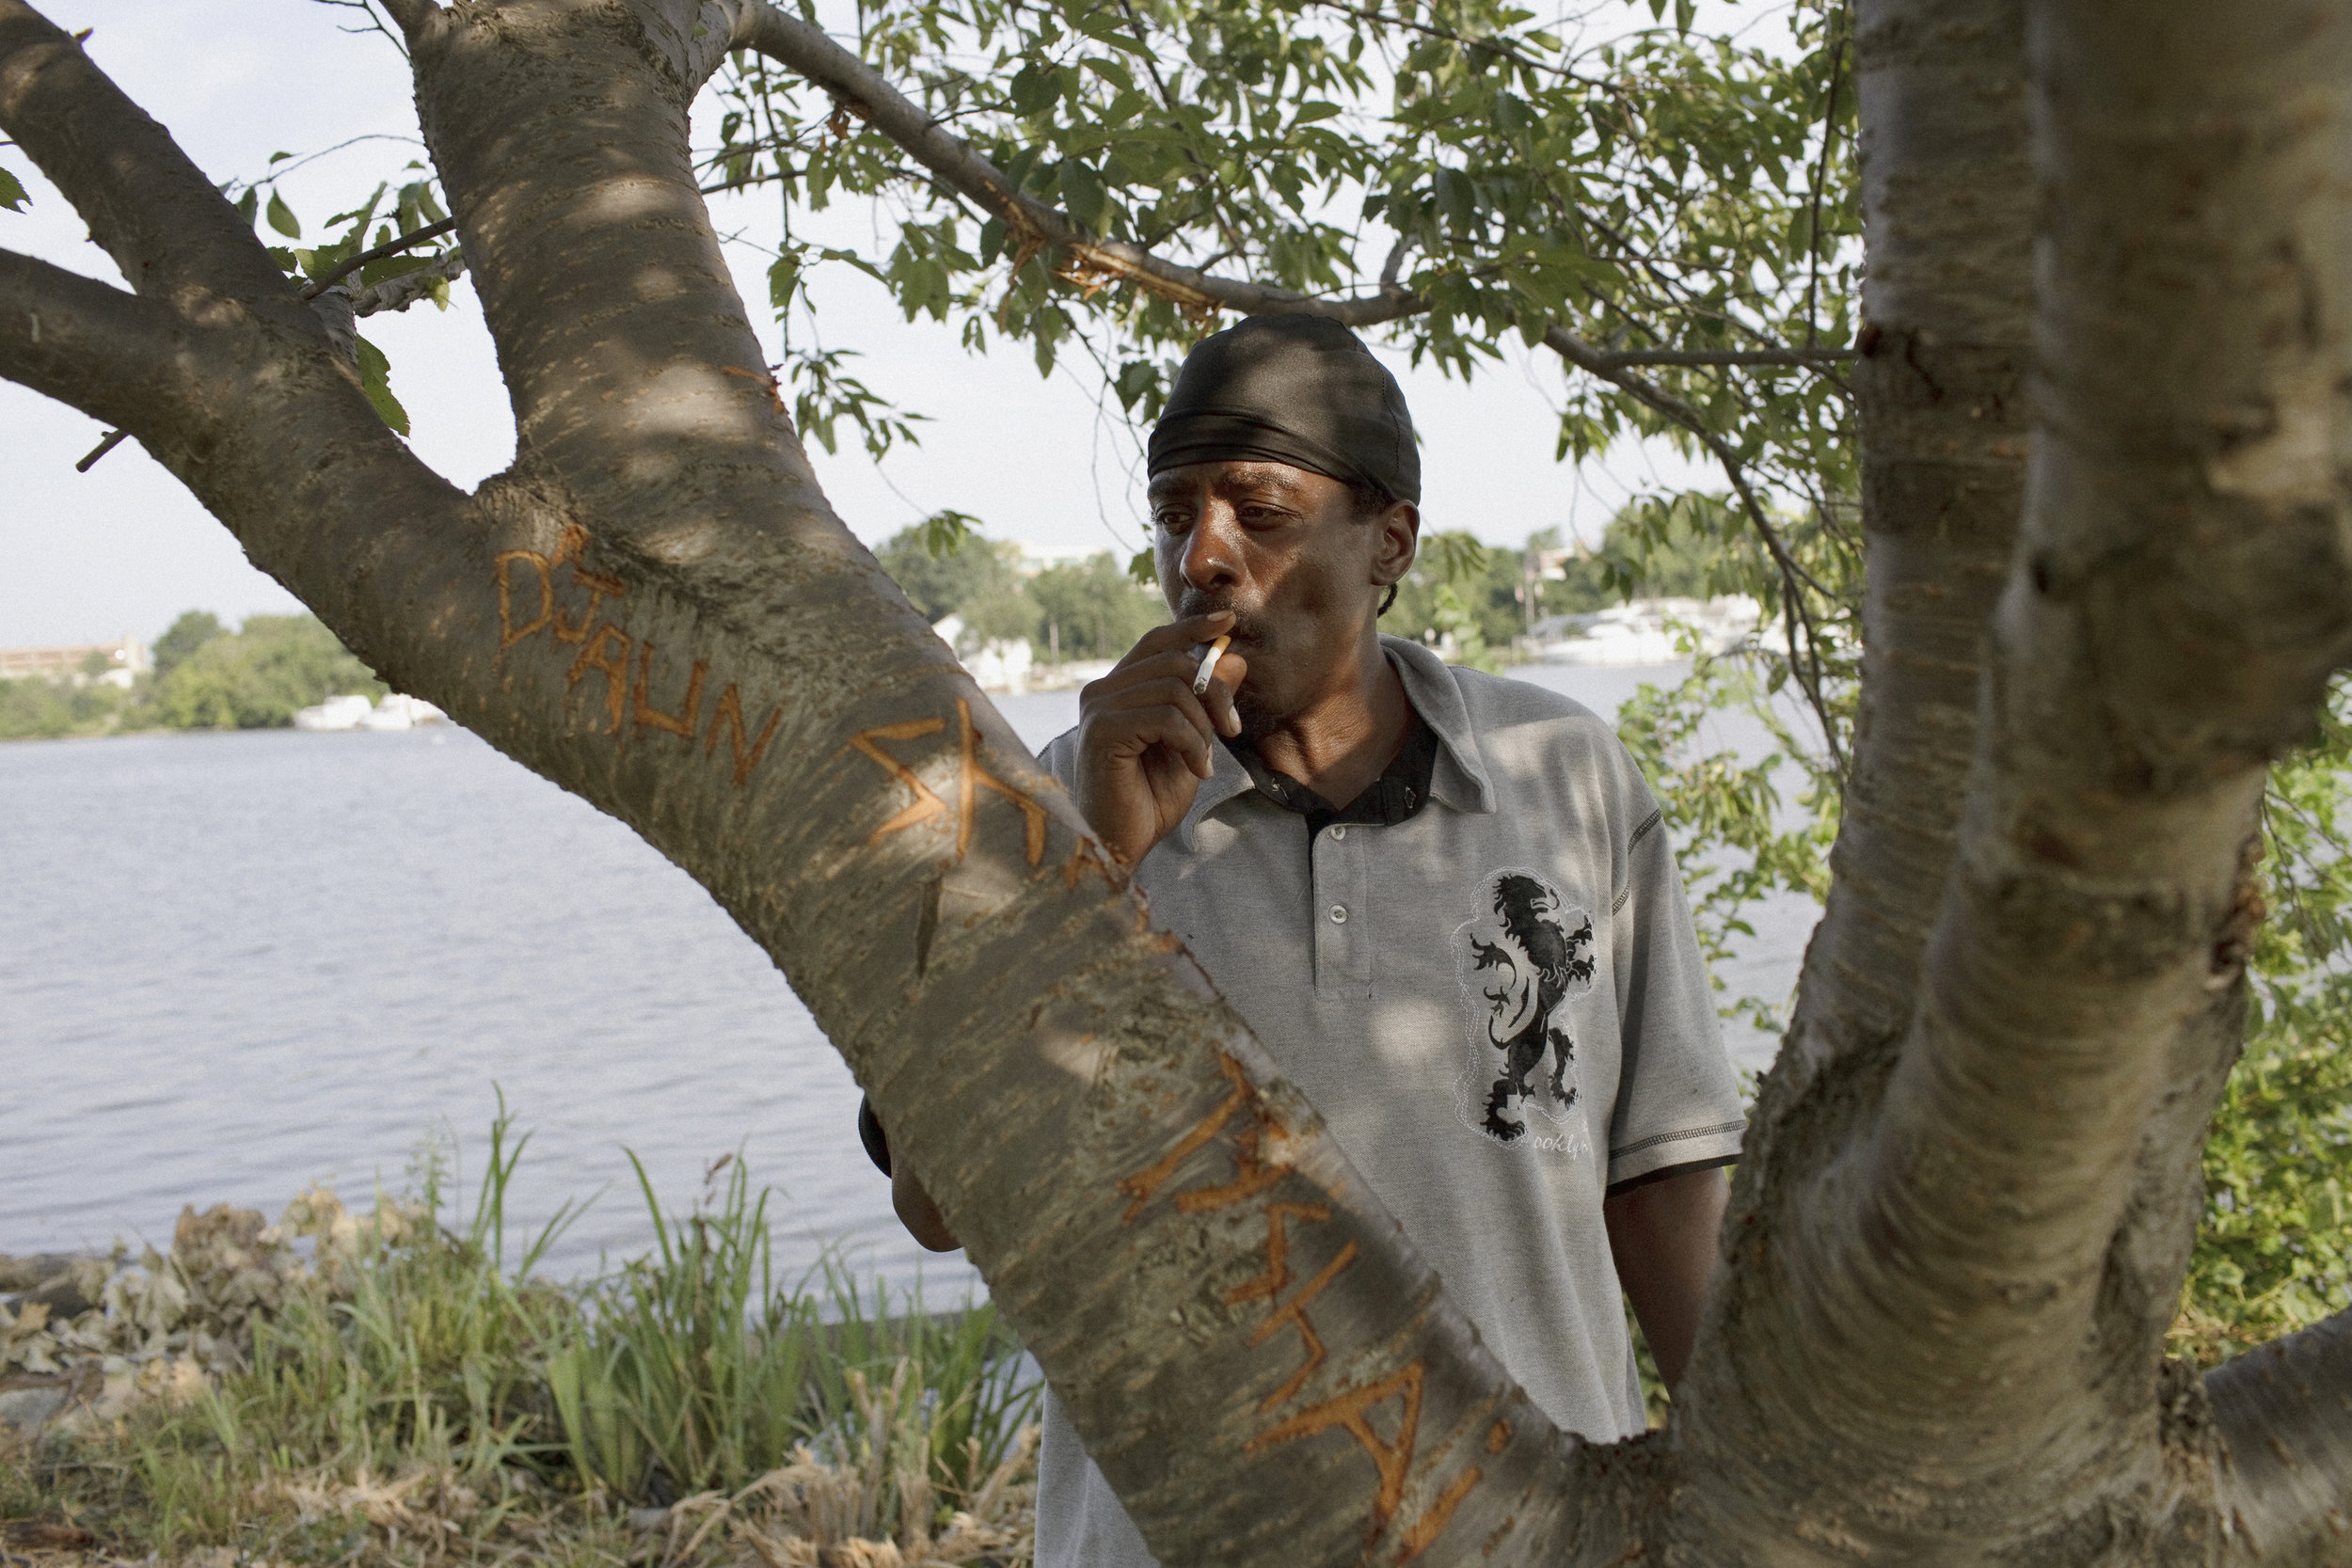 Wink, pictured here, and his best friend Earl routinely fish under this tree in Anacostia Park. Etched in the tree, D'Jaun is one of Wink's nine children, six of whom have their names carved here.